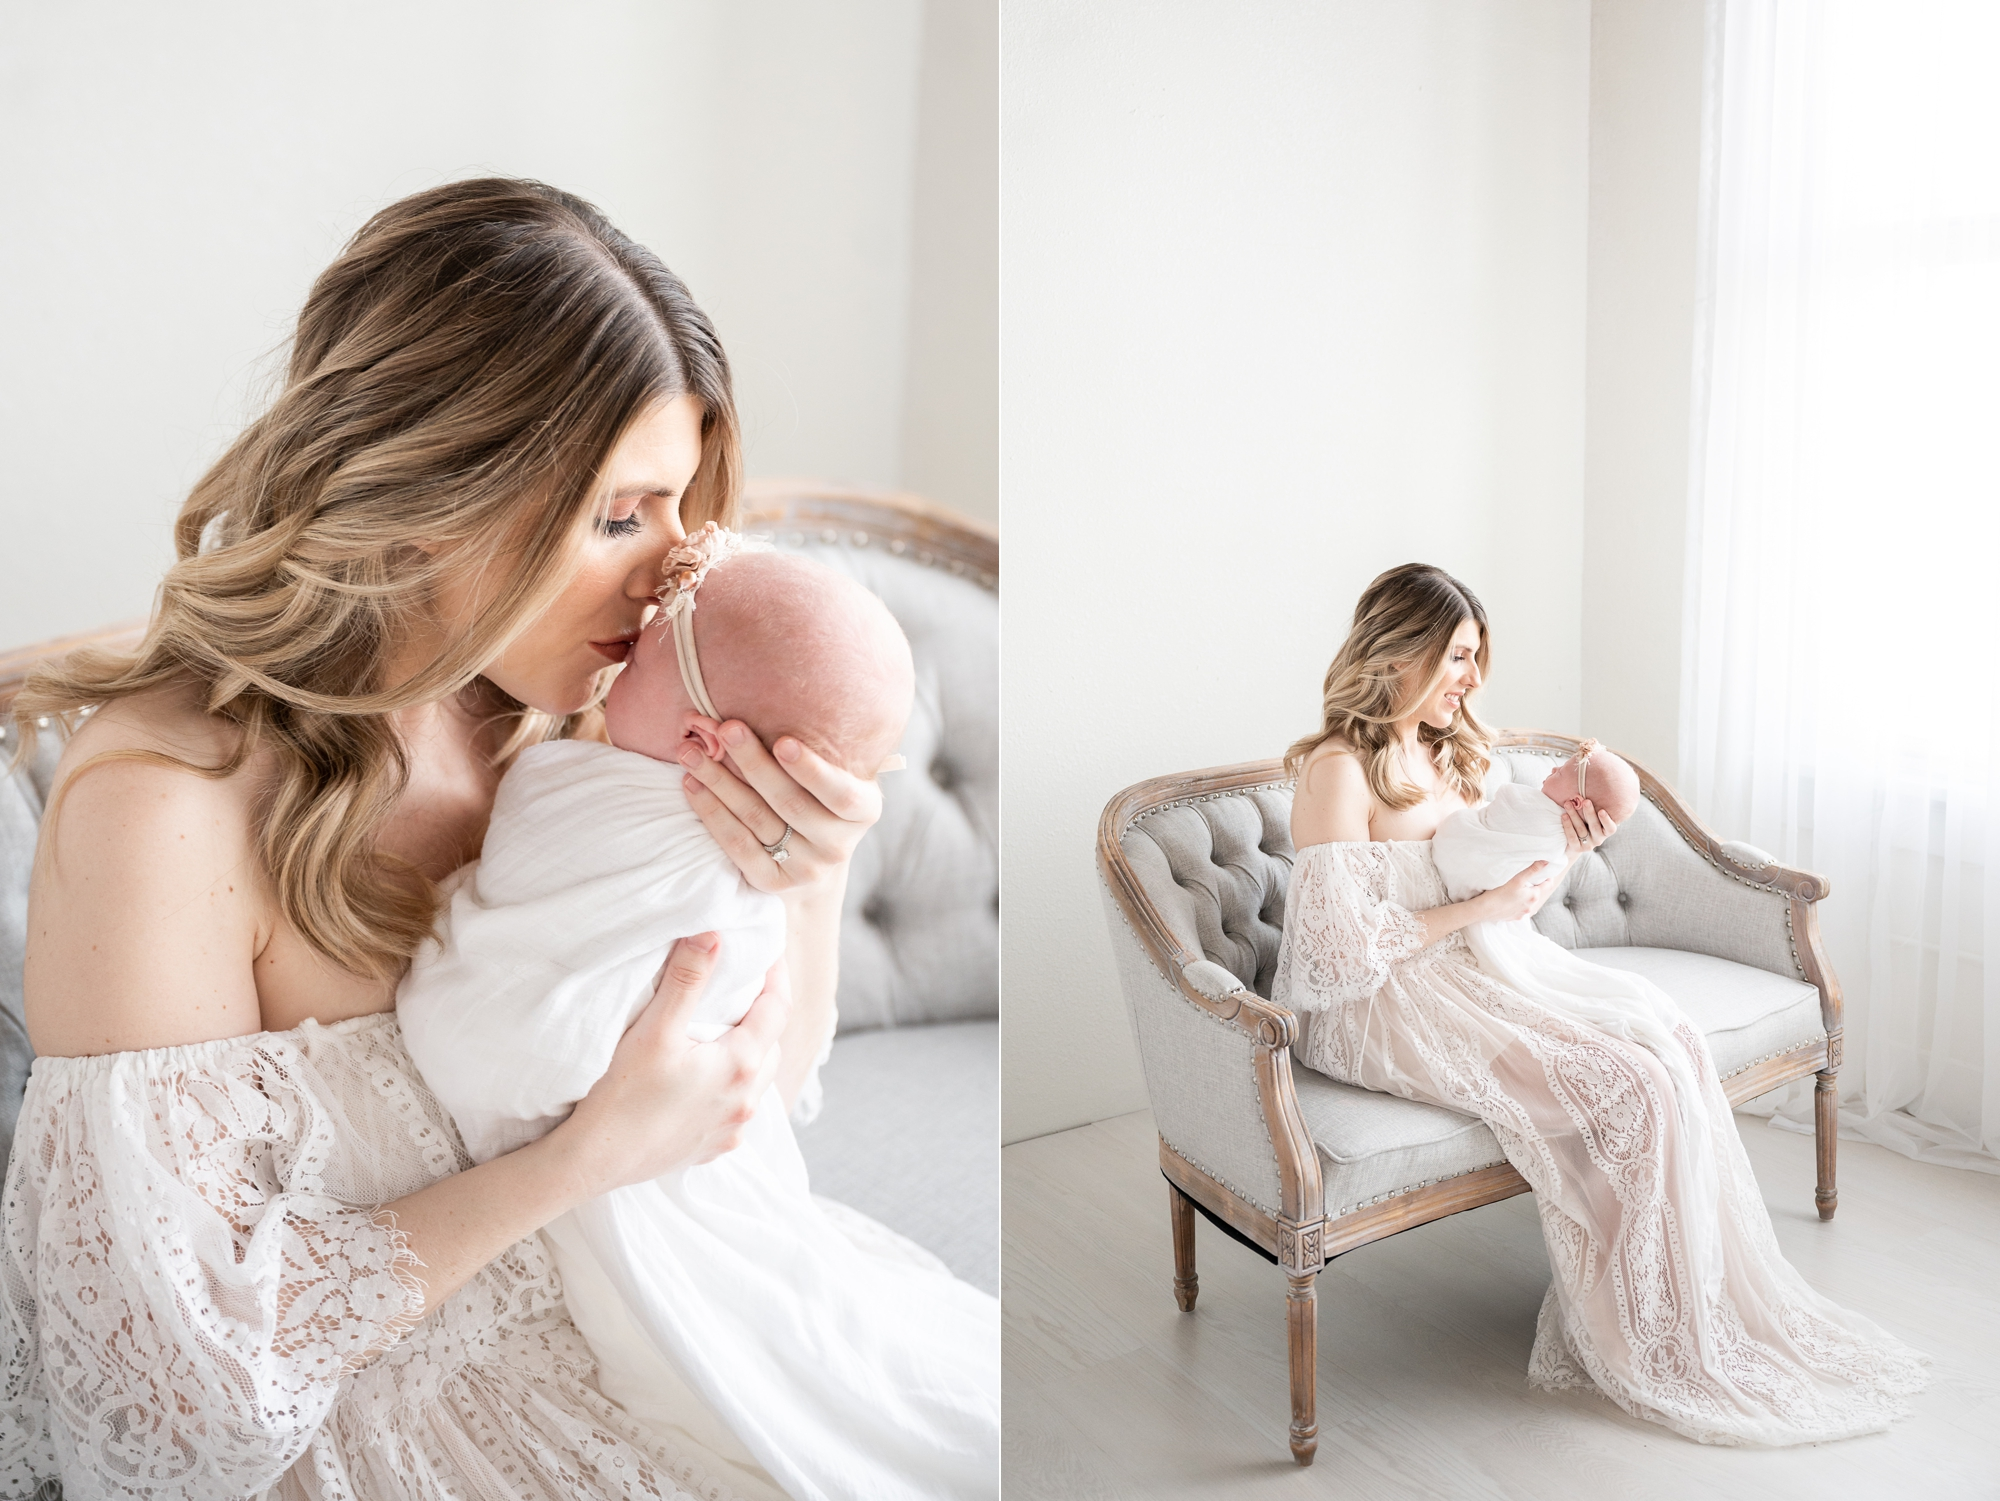 Mom kissing baby while sitting on beautiful seat in studio newborn session. Photo by Aimee Hamilton Photography.